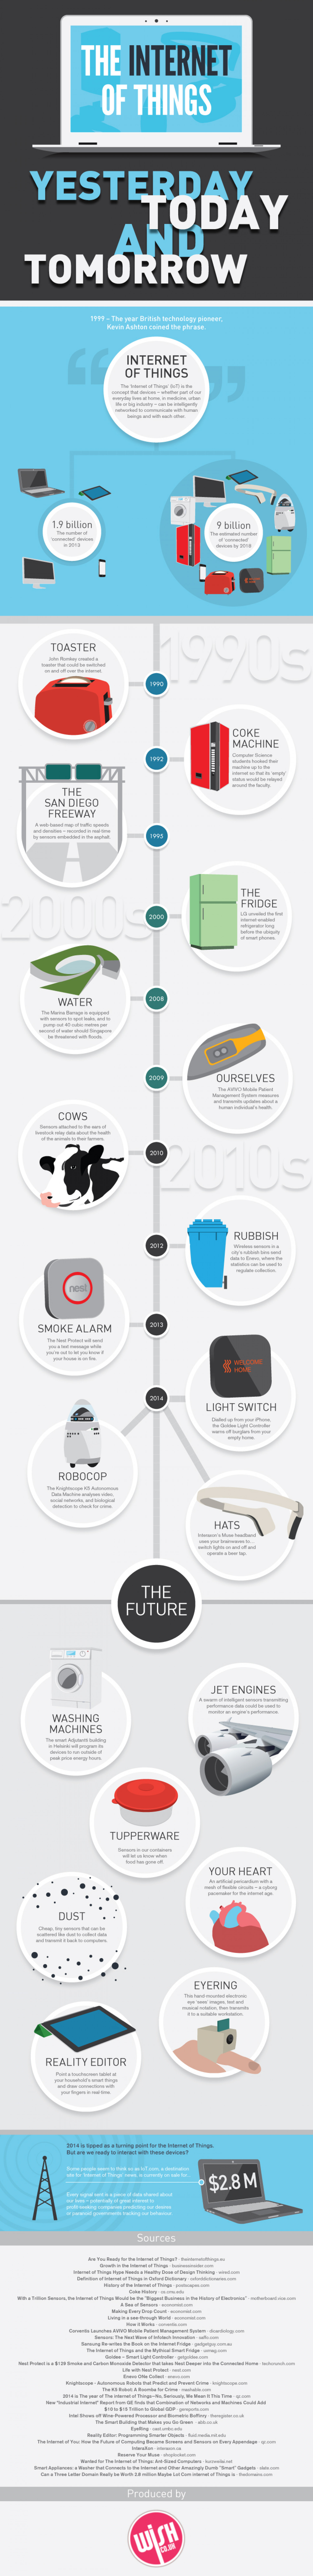 The Internet of Things: Yesterday, Today and Tomorrow Infographic